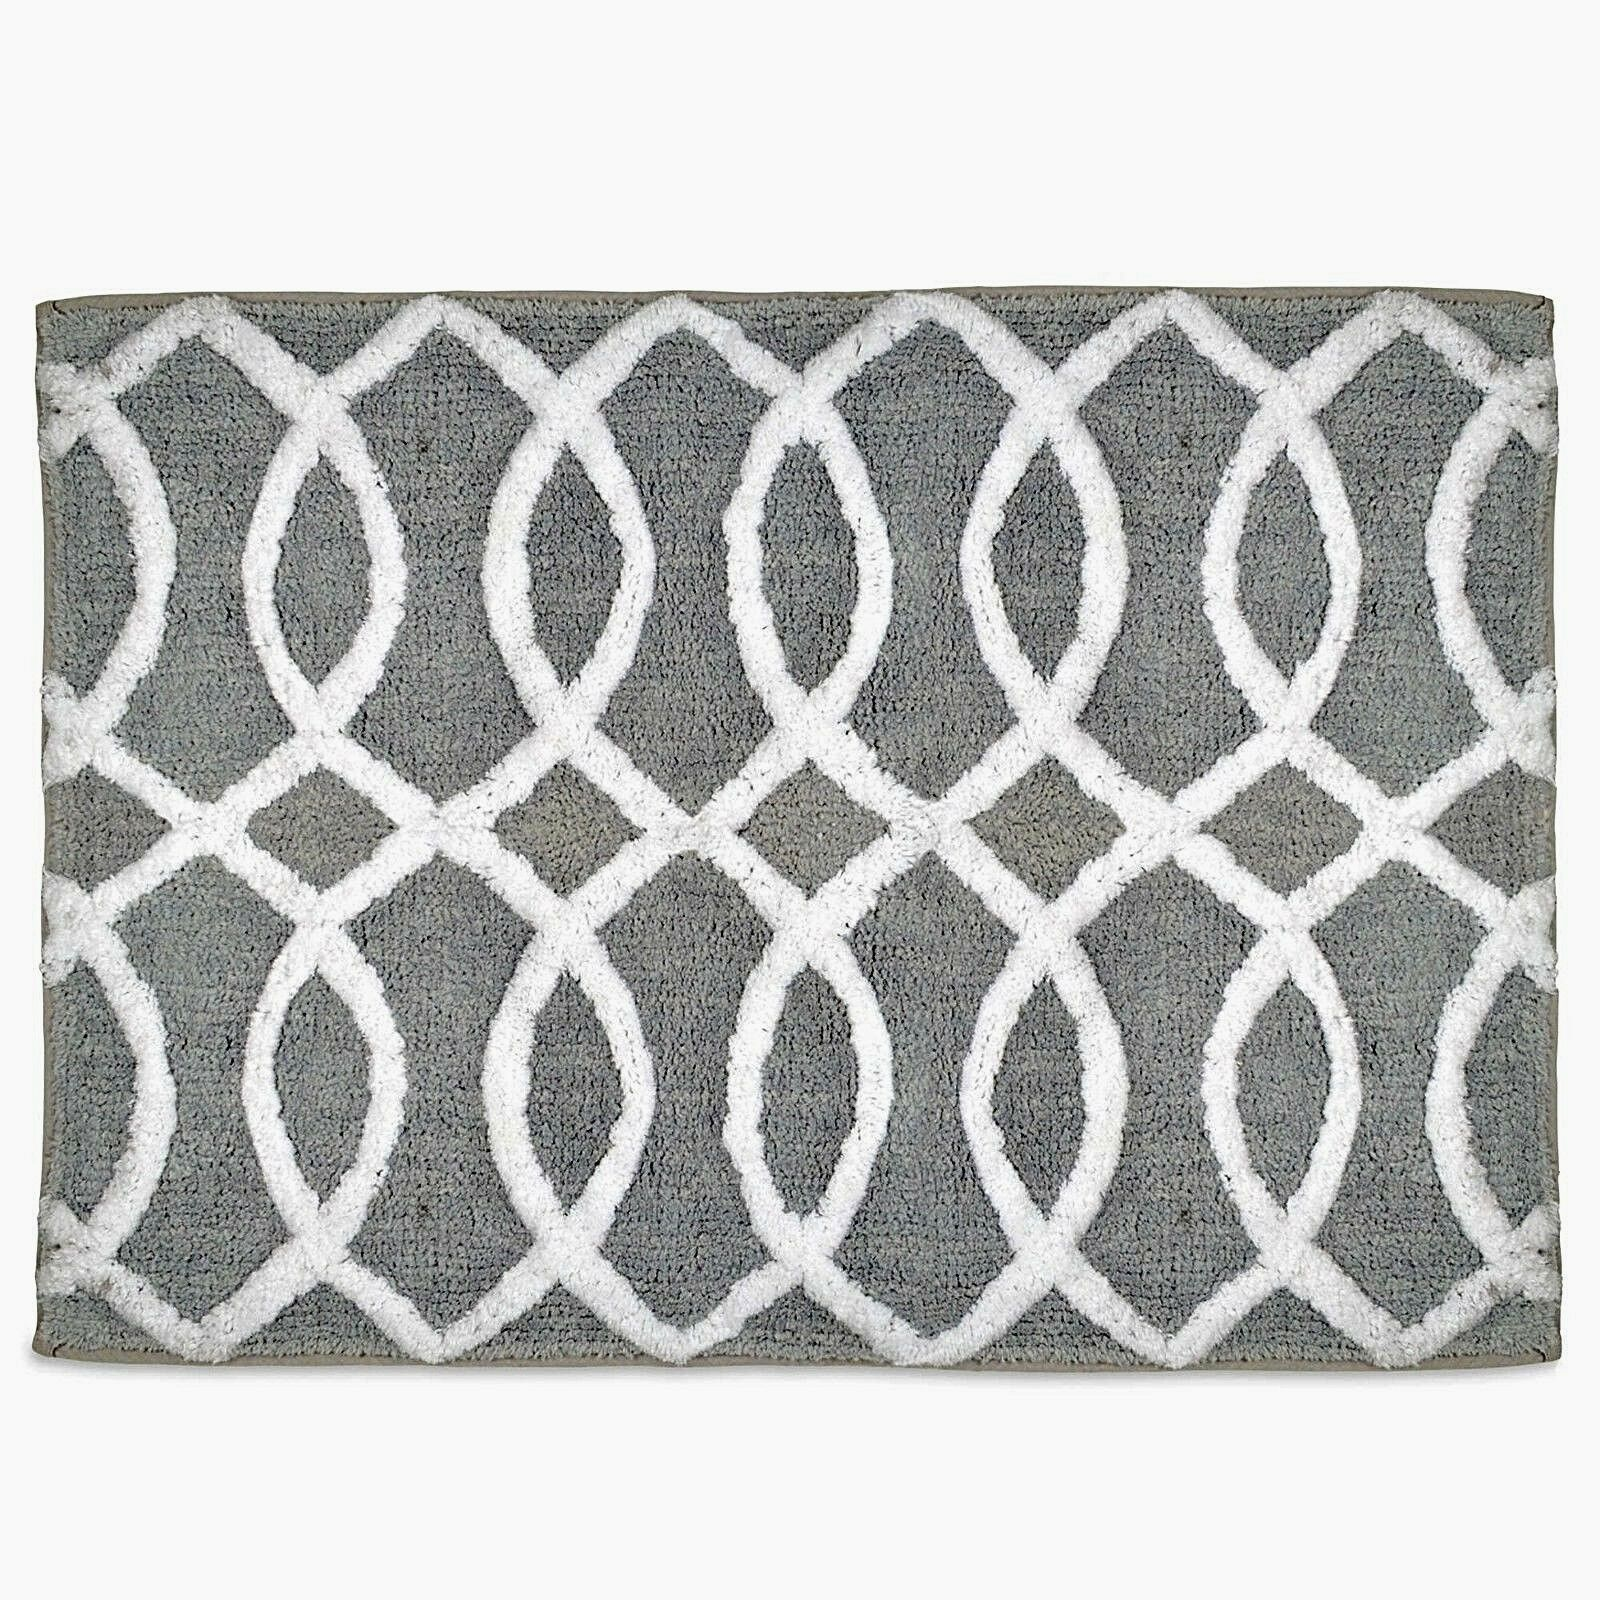 Picture of: New Style Lounge Gray White Patterned 20 X 30 Huntley Bath Rug 11290rgy Walmart Com Walmart Com